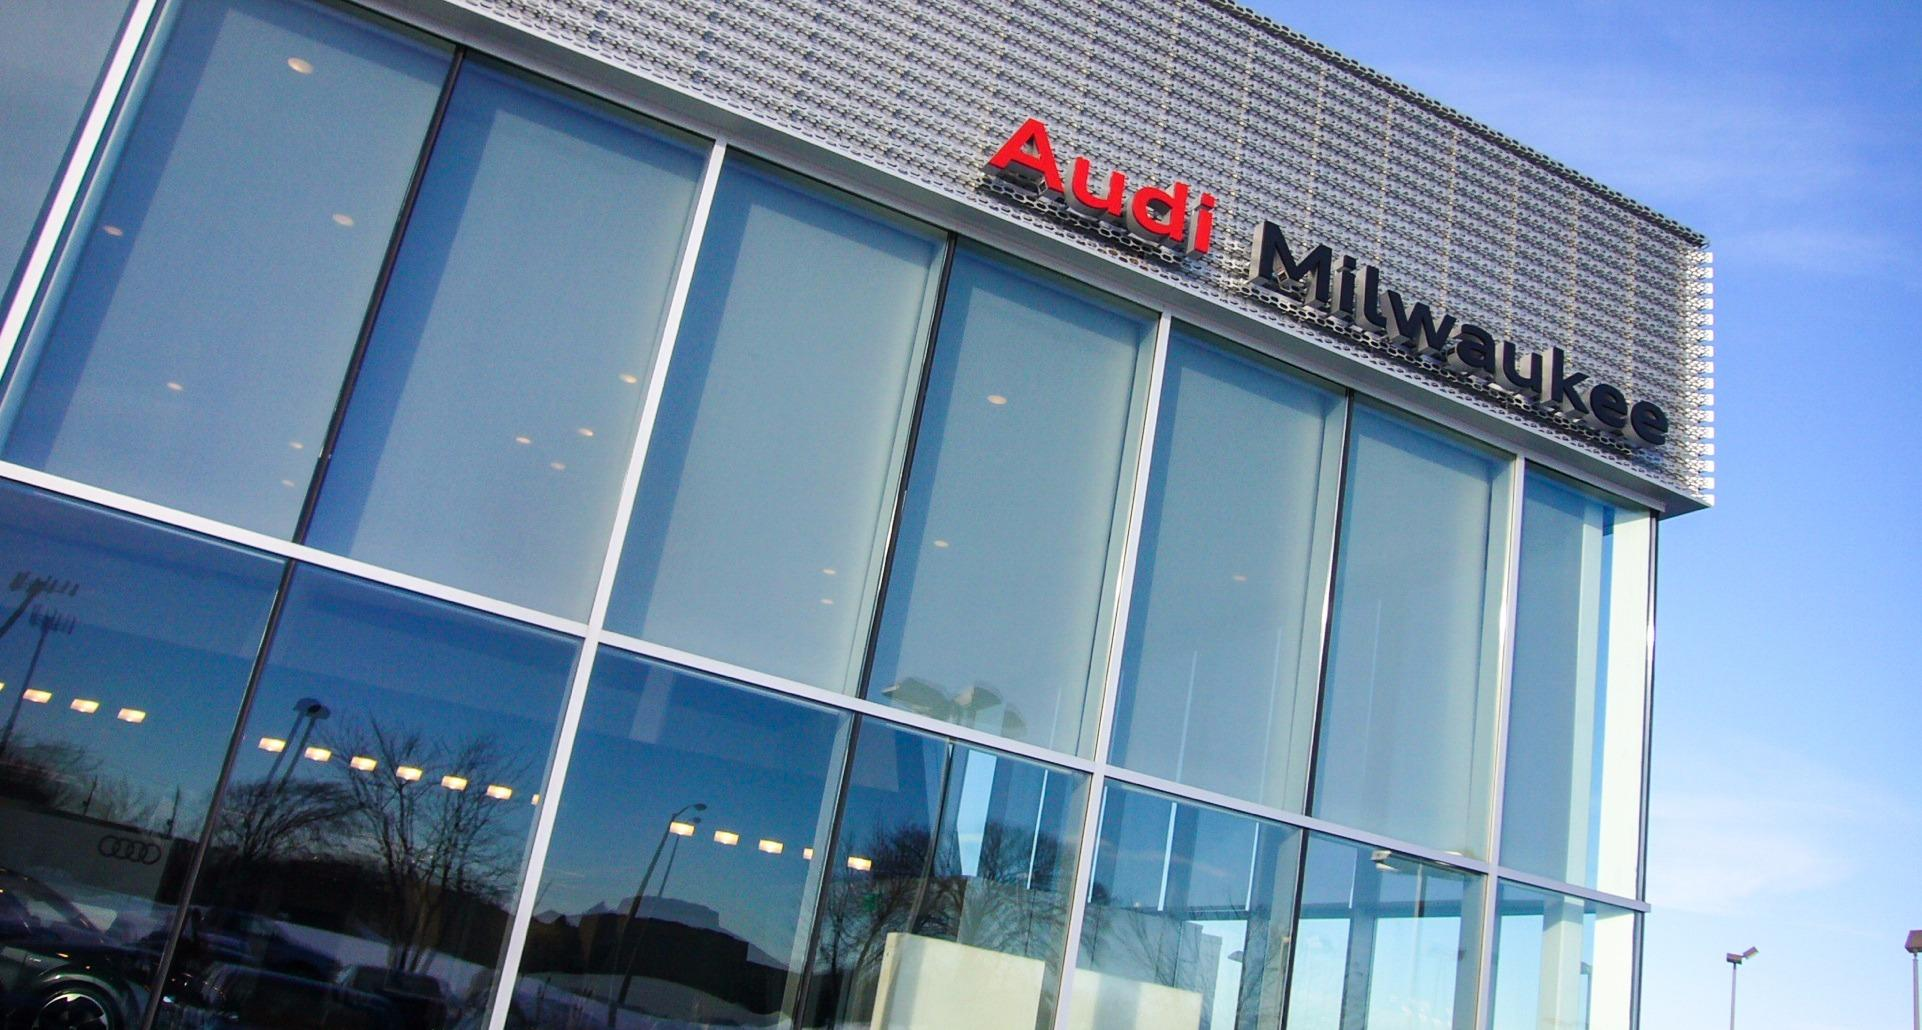 Audi Milwaukee image 0